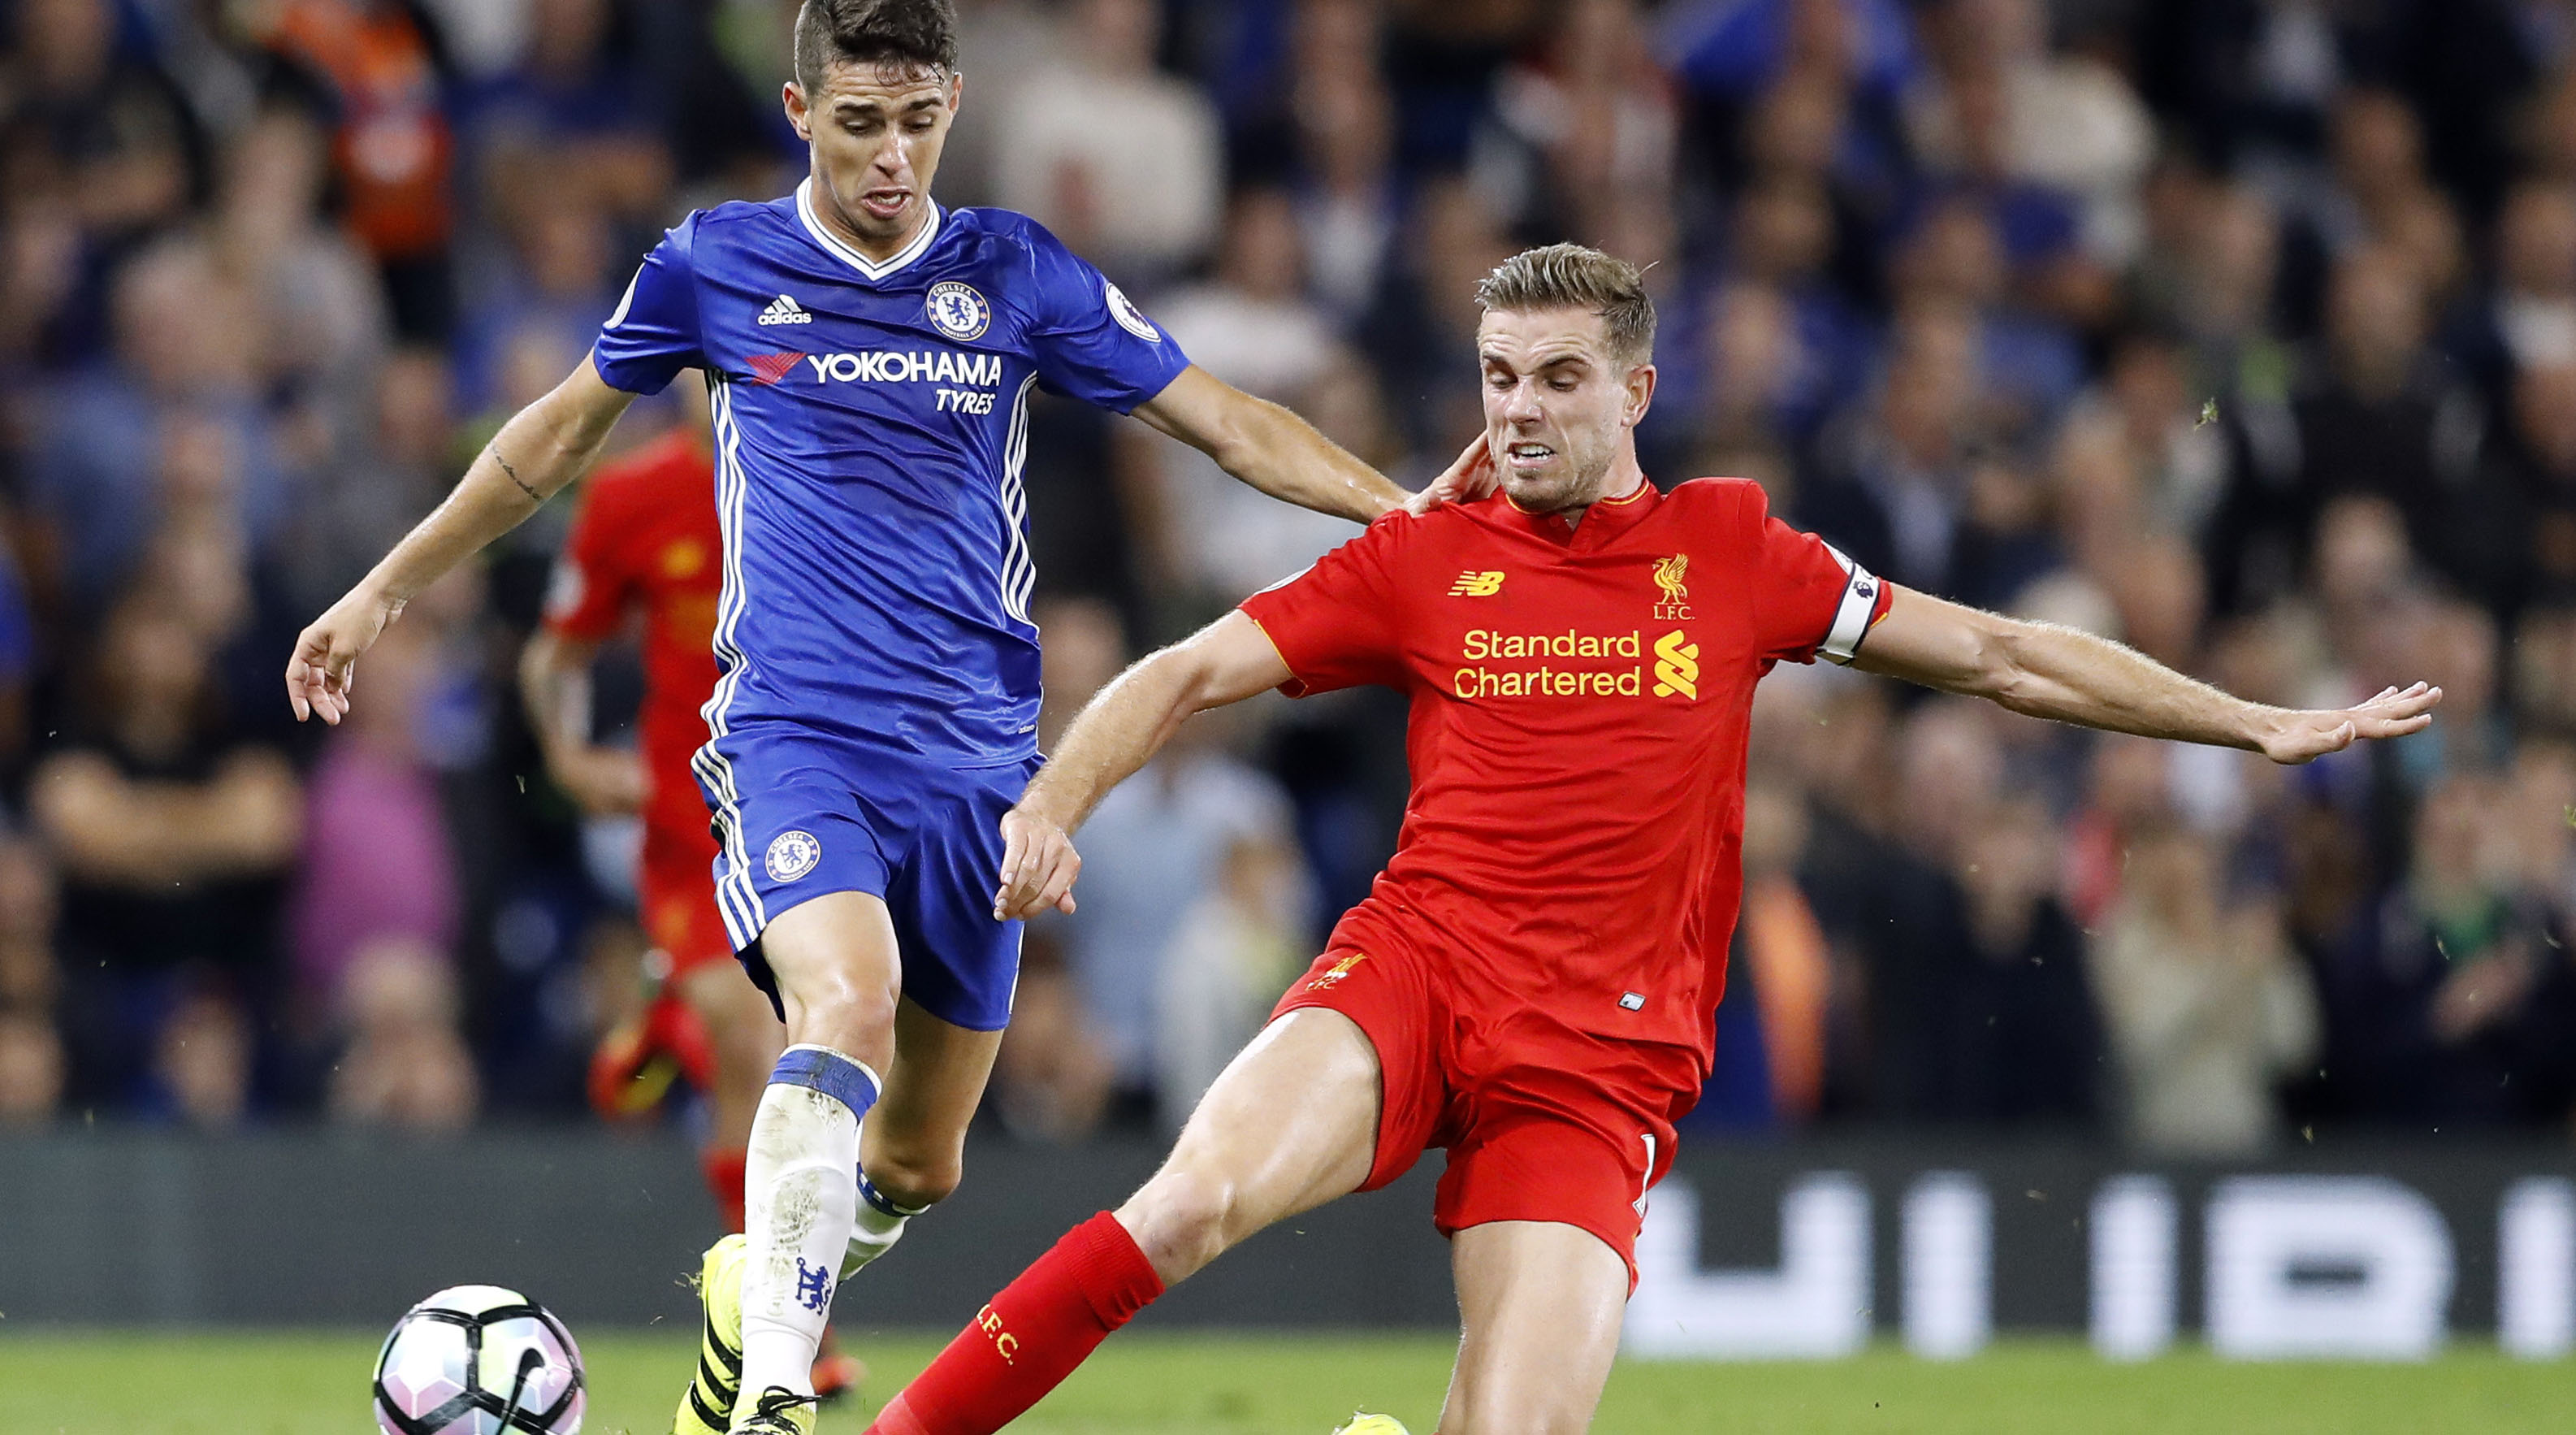 Liverpool Vs Chelsea: Watch Liverpool Vs Chelsea Online: Live Stream, TV, Time